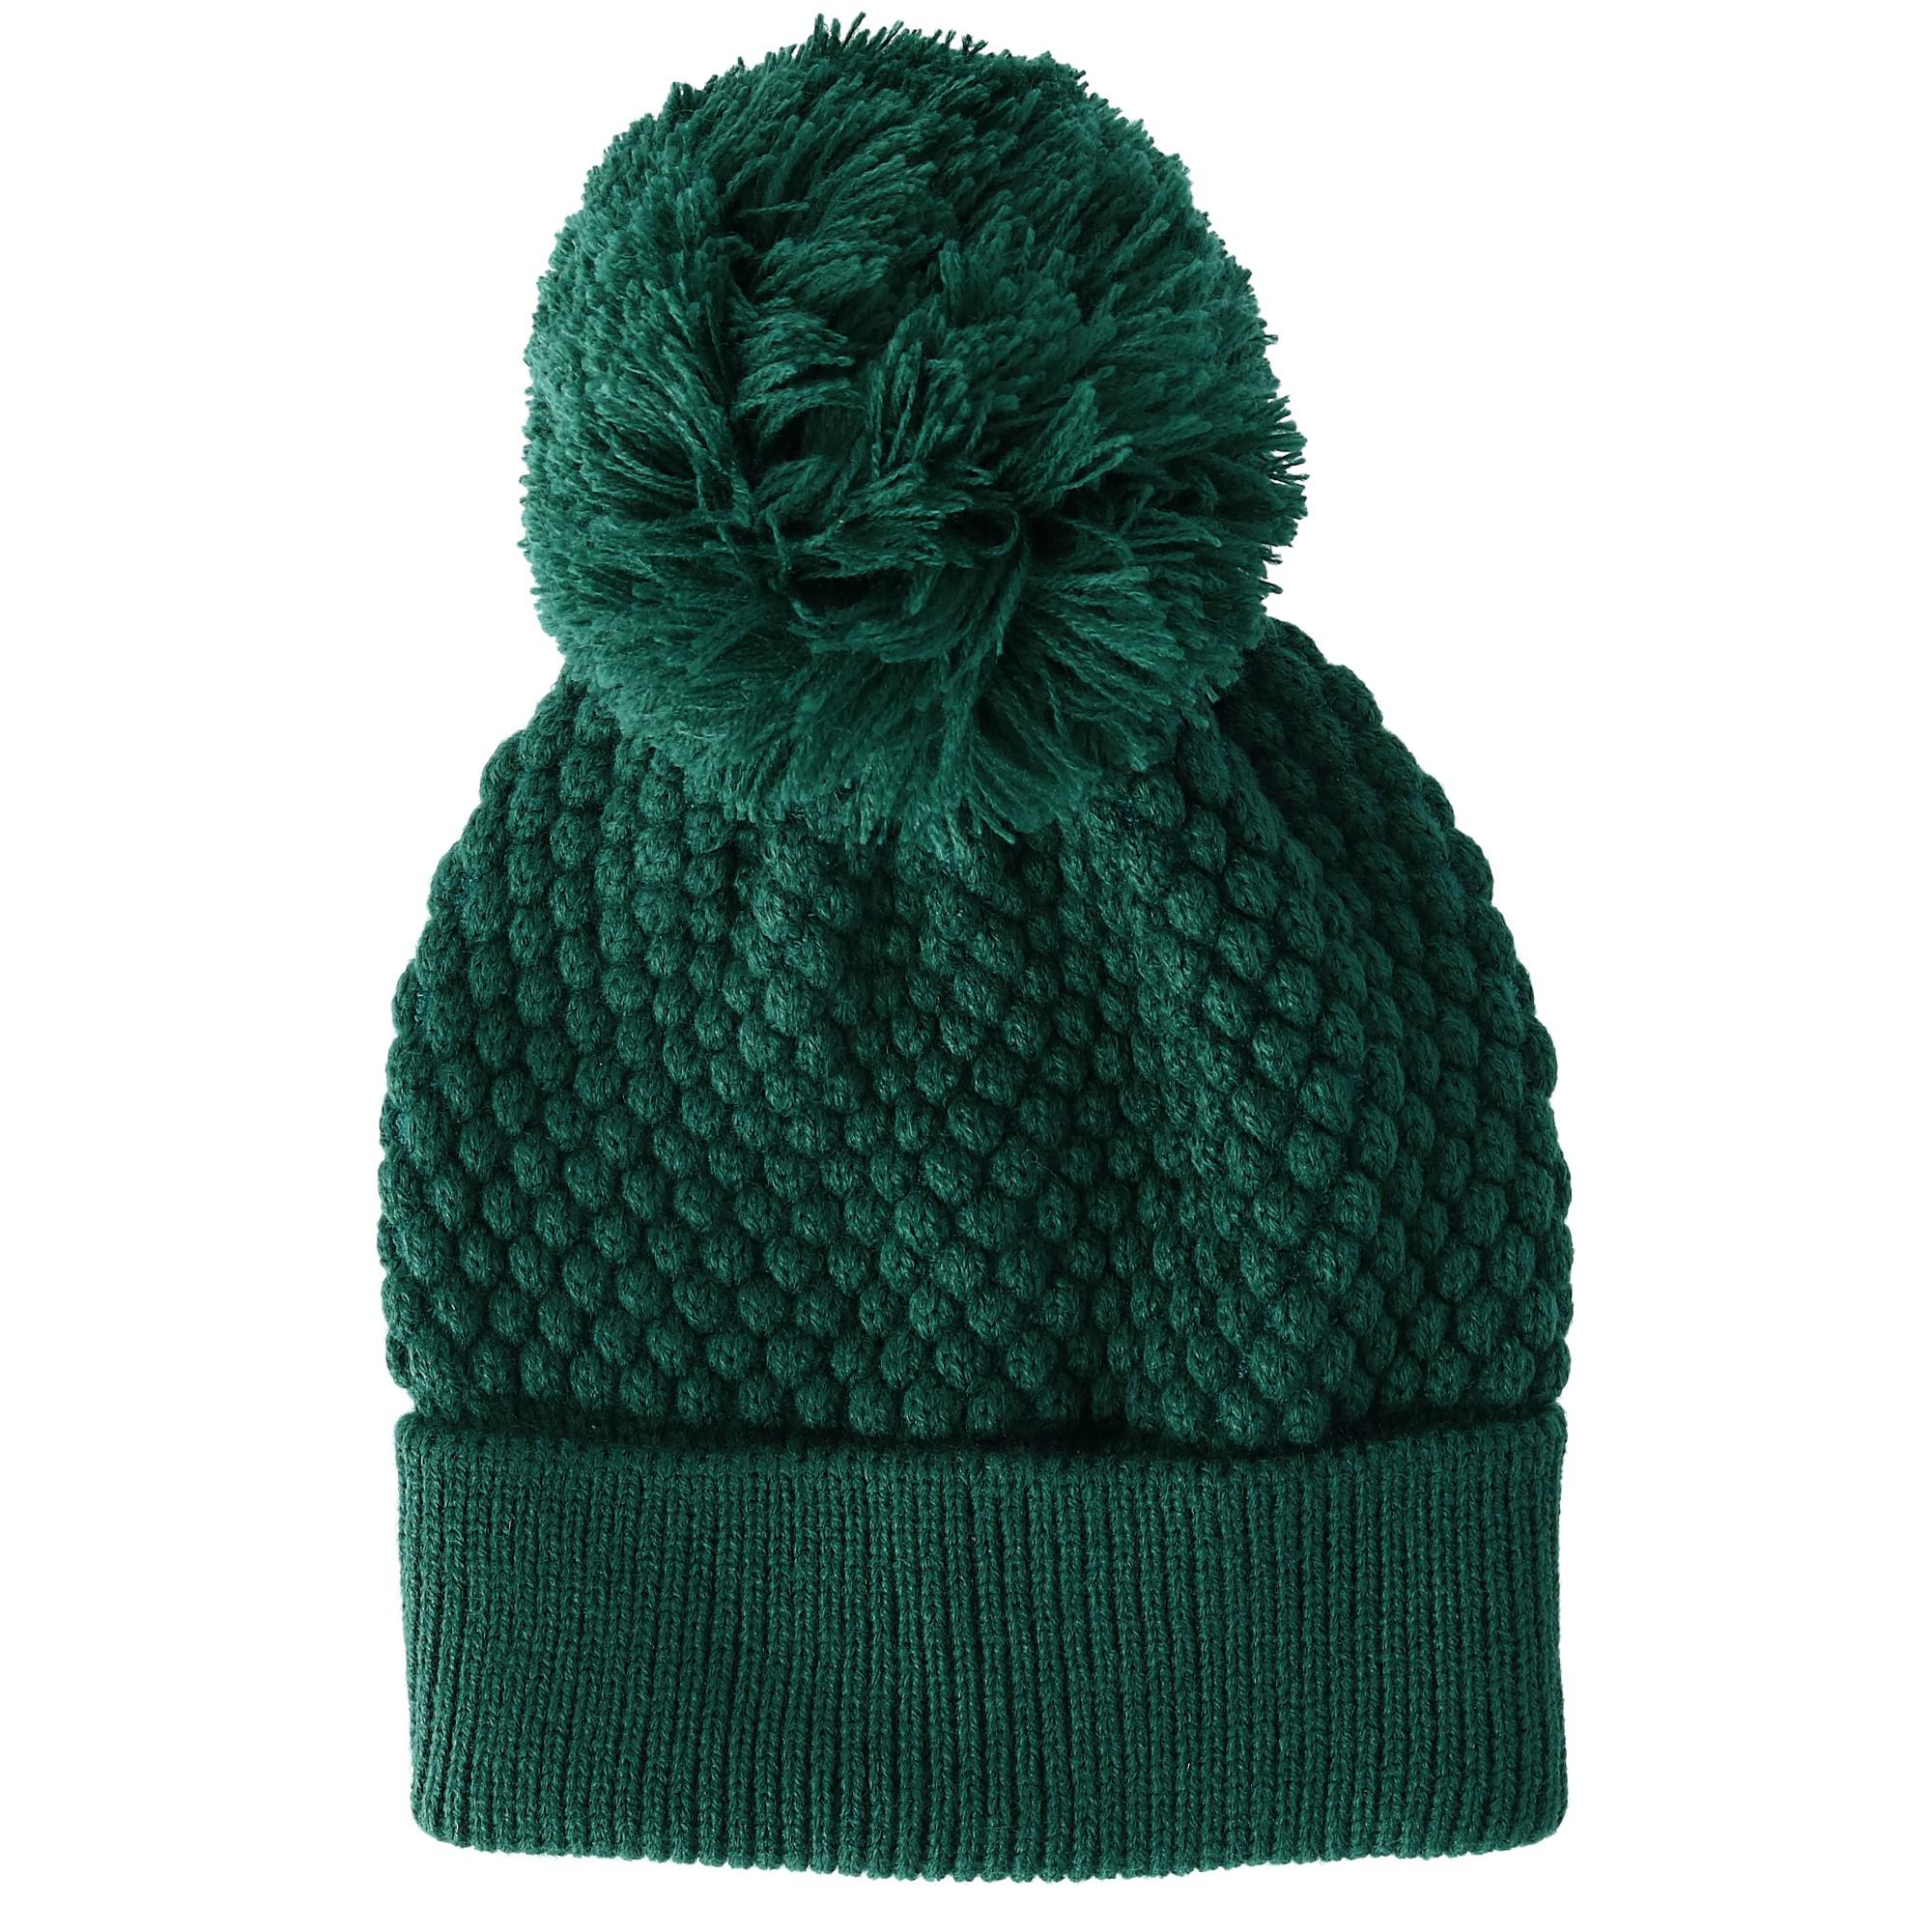 New-David-amp-Young-Women-039-s-Popcorn-Knit-Beanie-Hat-with-Pom